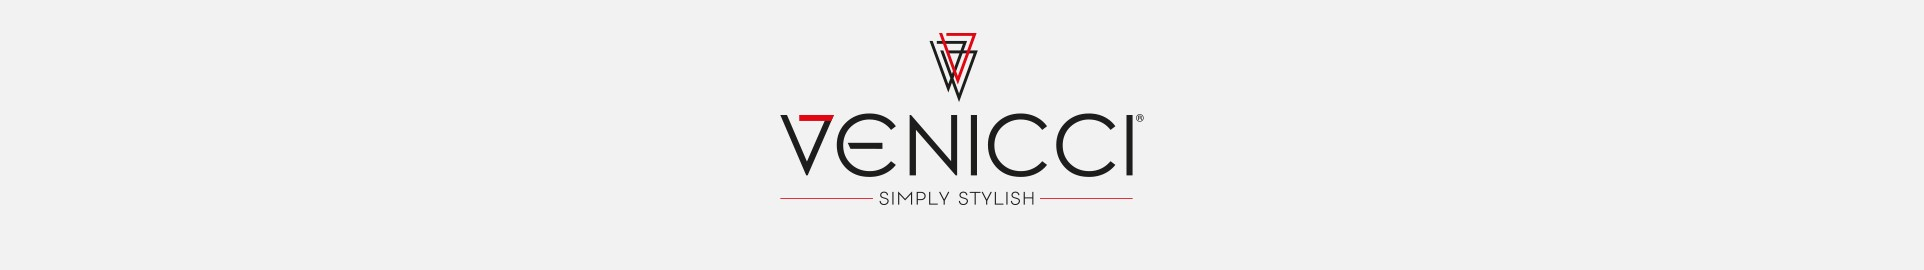 Venicci travel systems